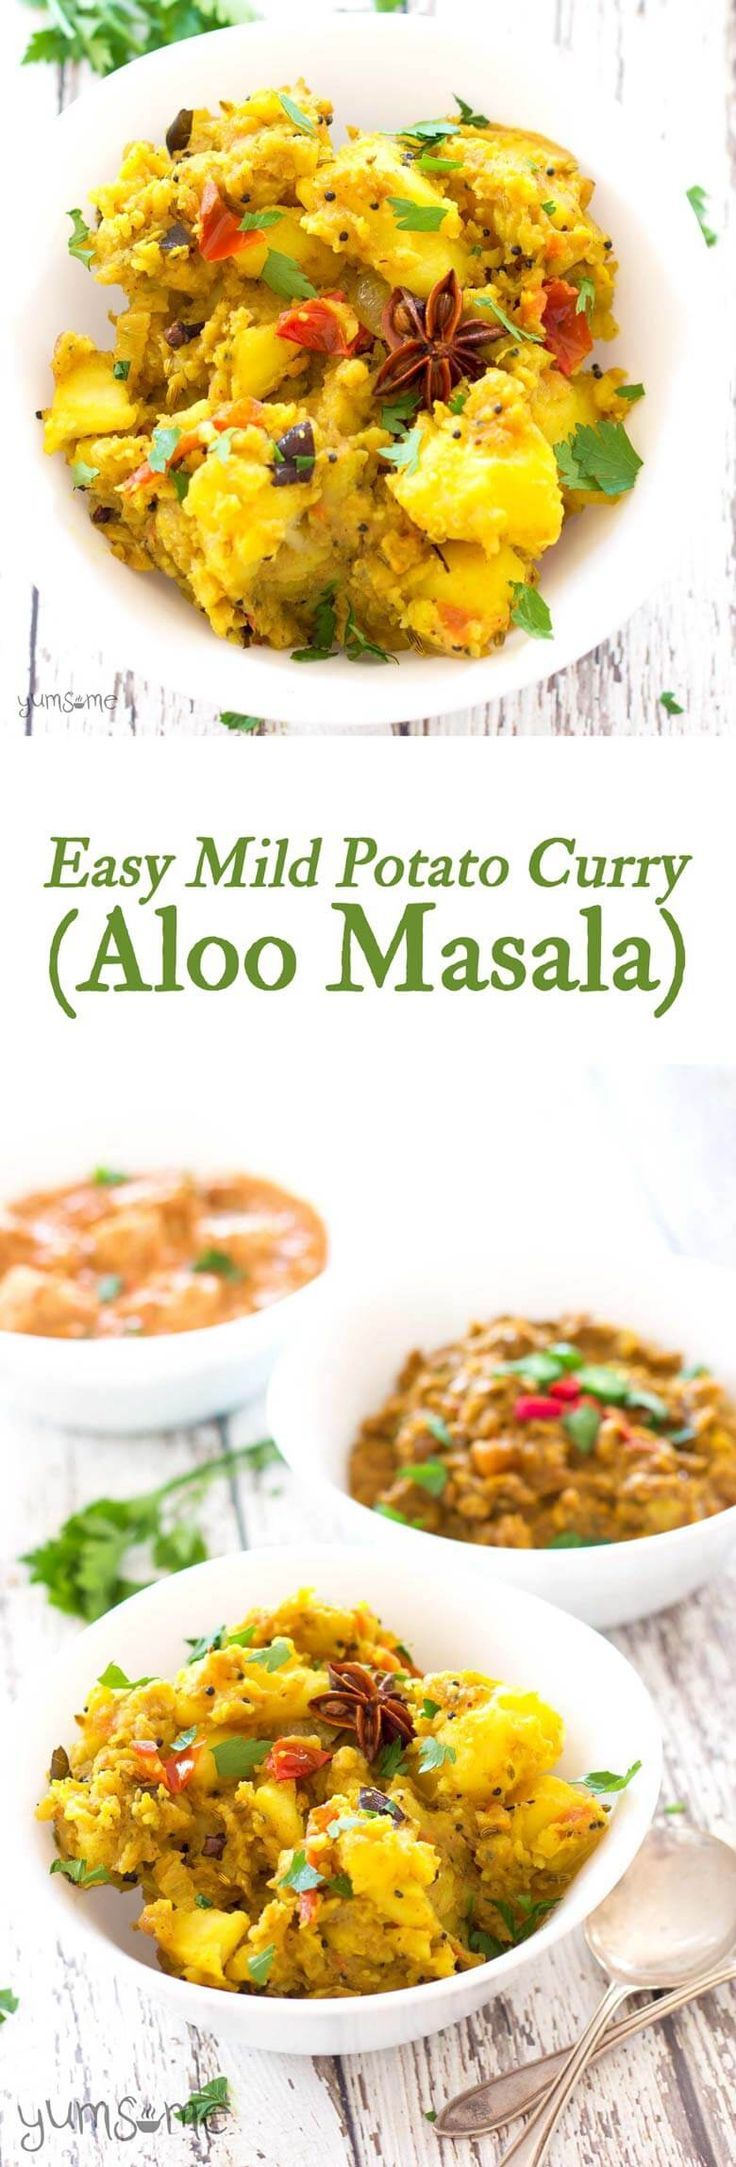 Aloo masala is a deliciously comforting, mildly-spiced mixture of fried mashed potatoes, onion, and tomato. It's a fantastic meal at any time of the day but it's especially great for breakfast.   http://yumsome.com